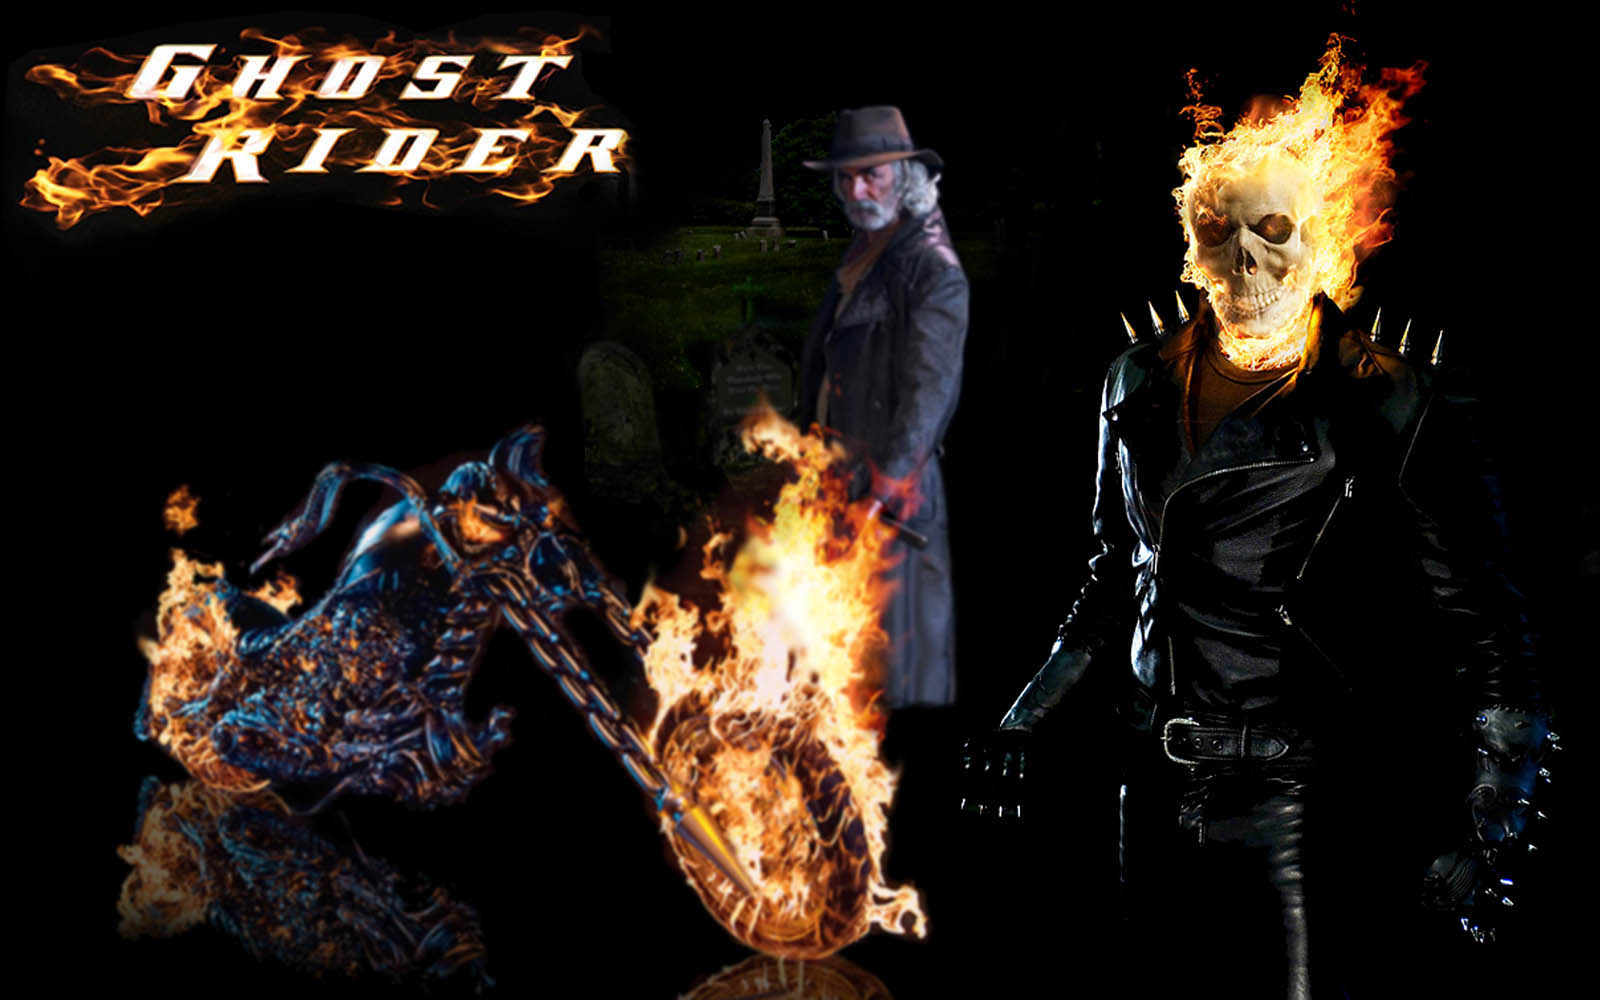 Ghost Rider Bike on Fire Wallpapers images 1600x1000